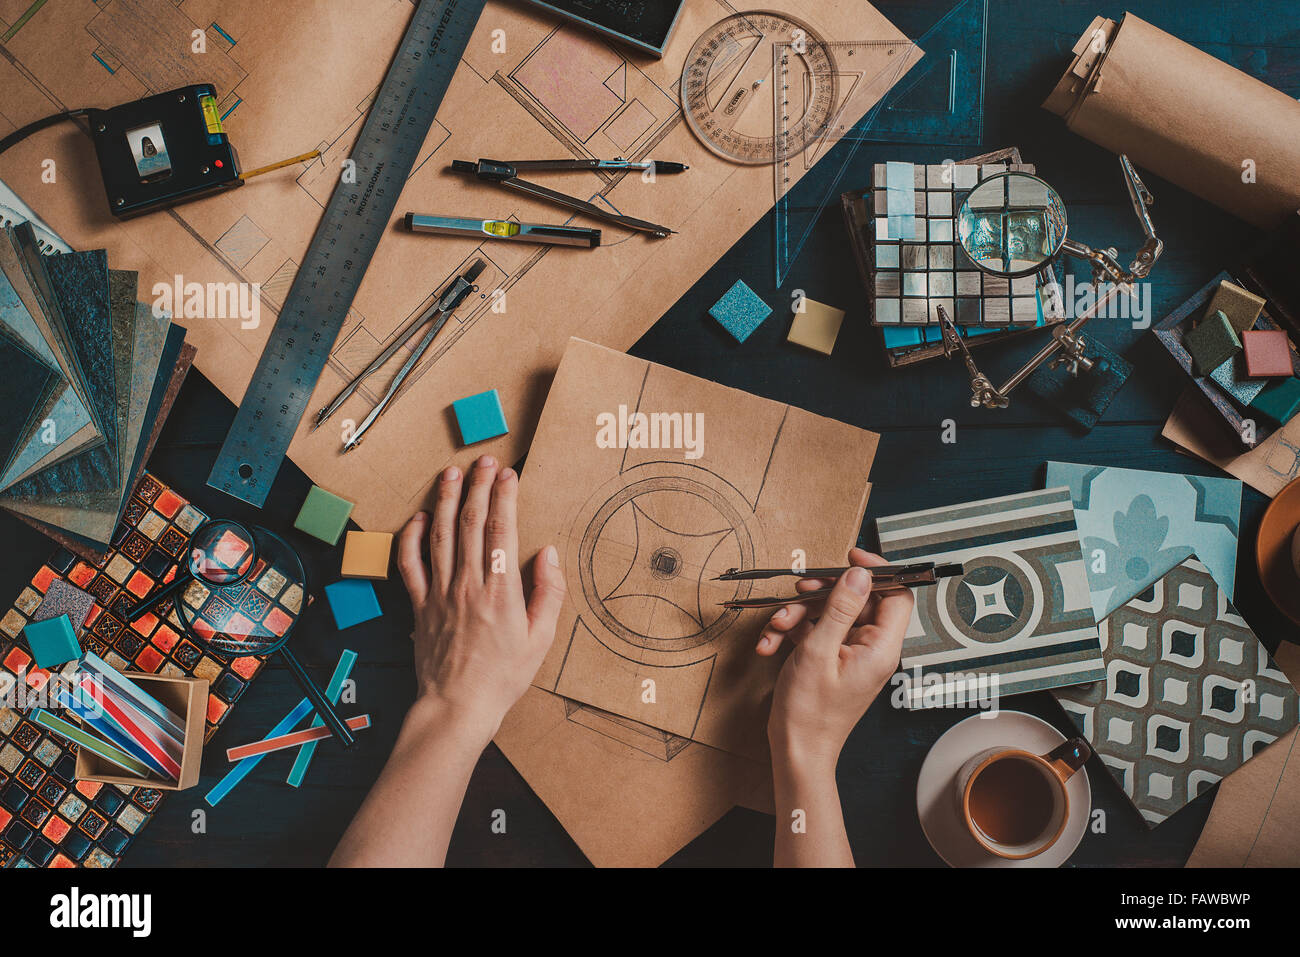 Designer workplace with creative tools and drawings - Stock Image